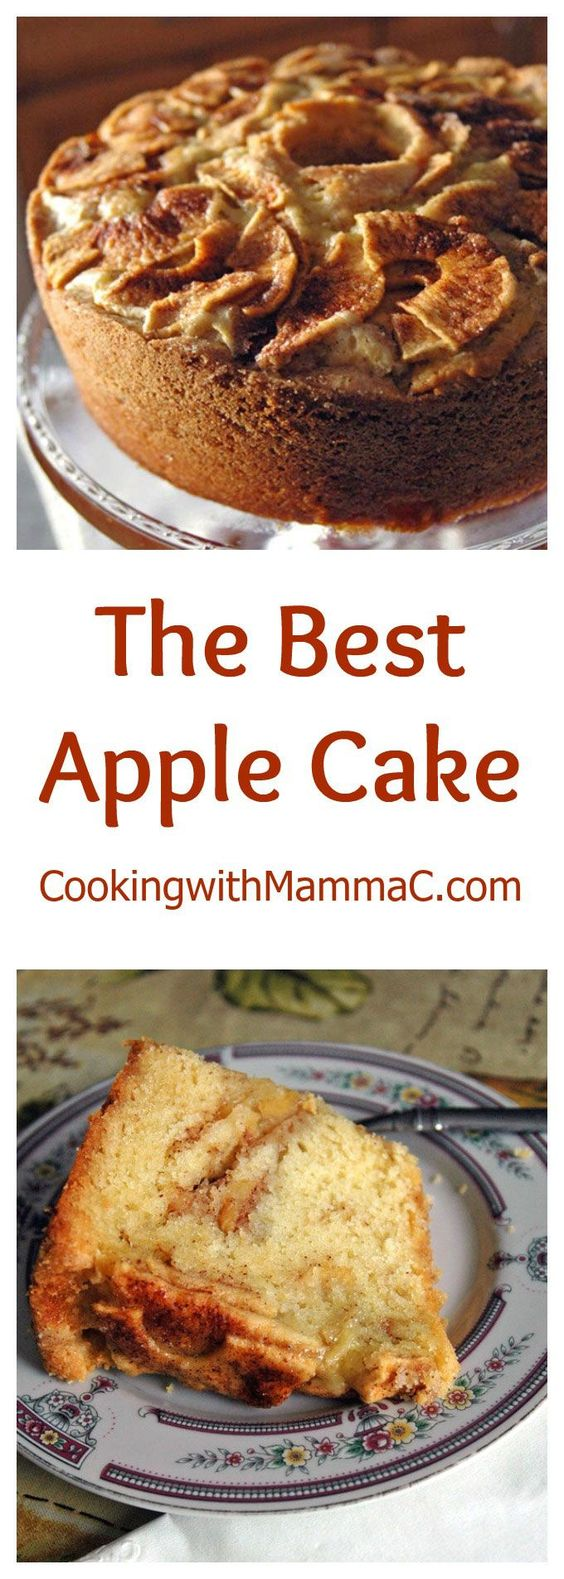 The Best Apple Cake has the texture of moist pound cake, a crunchy crust, plus the ribbons of gooey cinnamon sugar you'd find in coffee cake. Parve